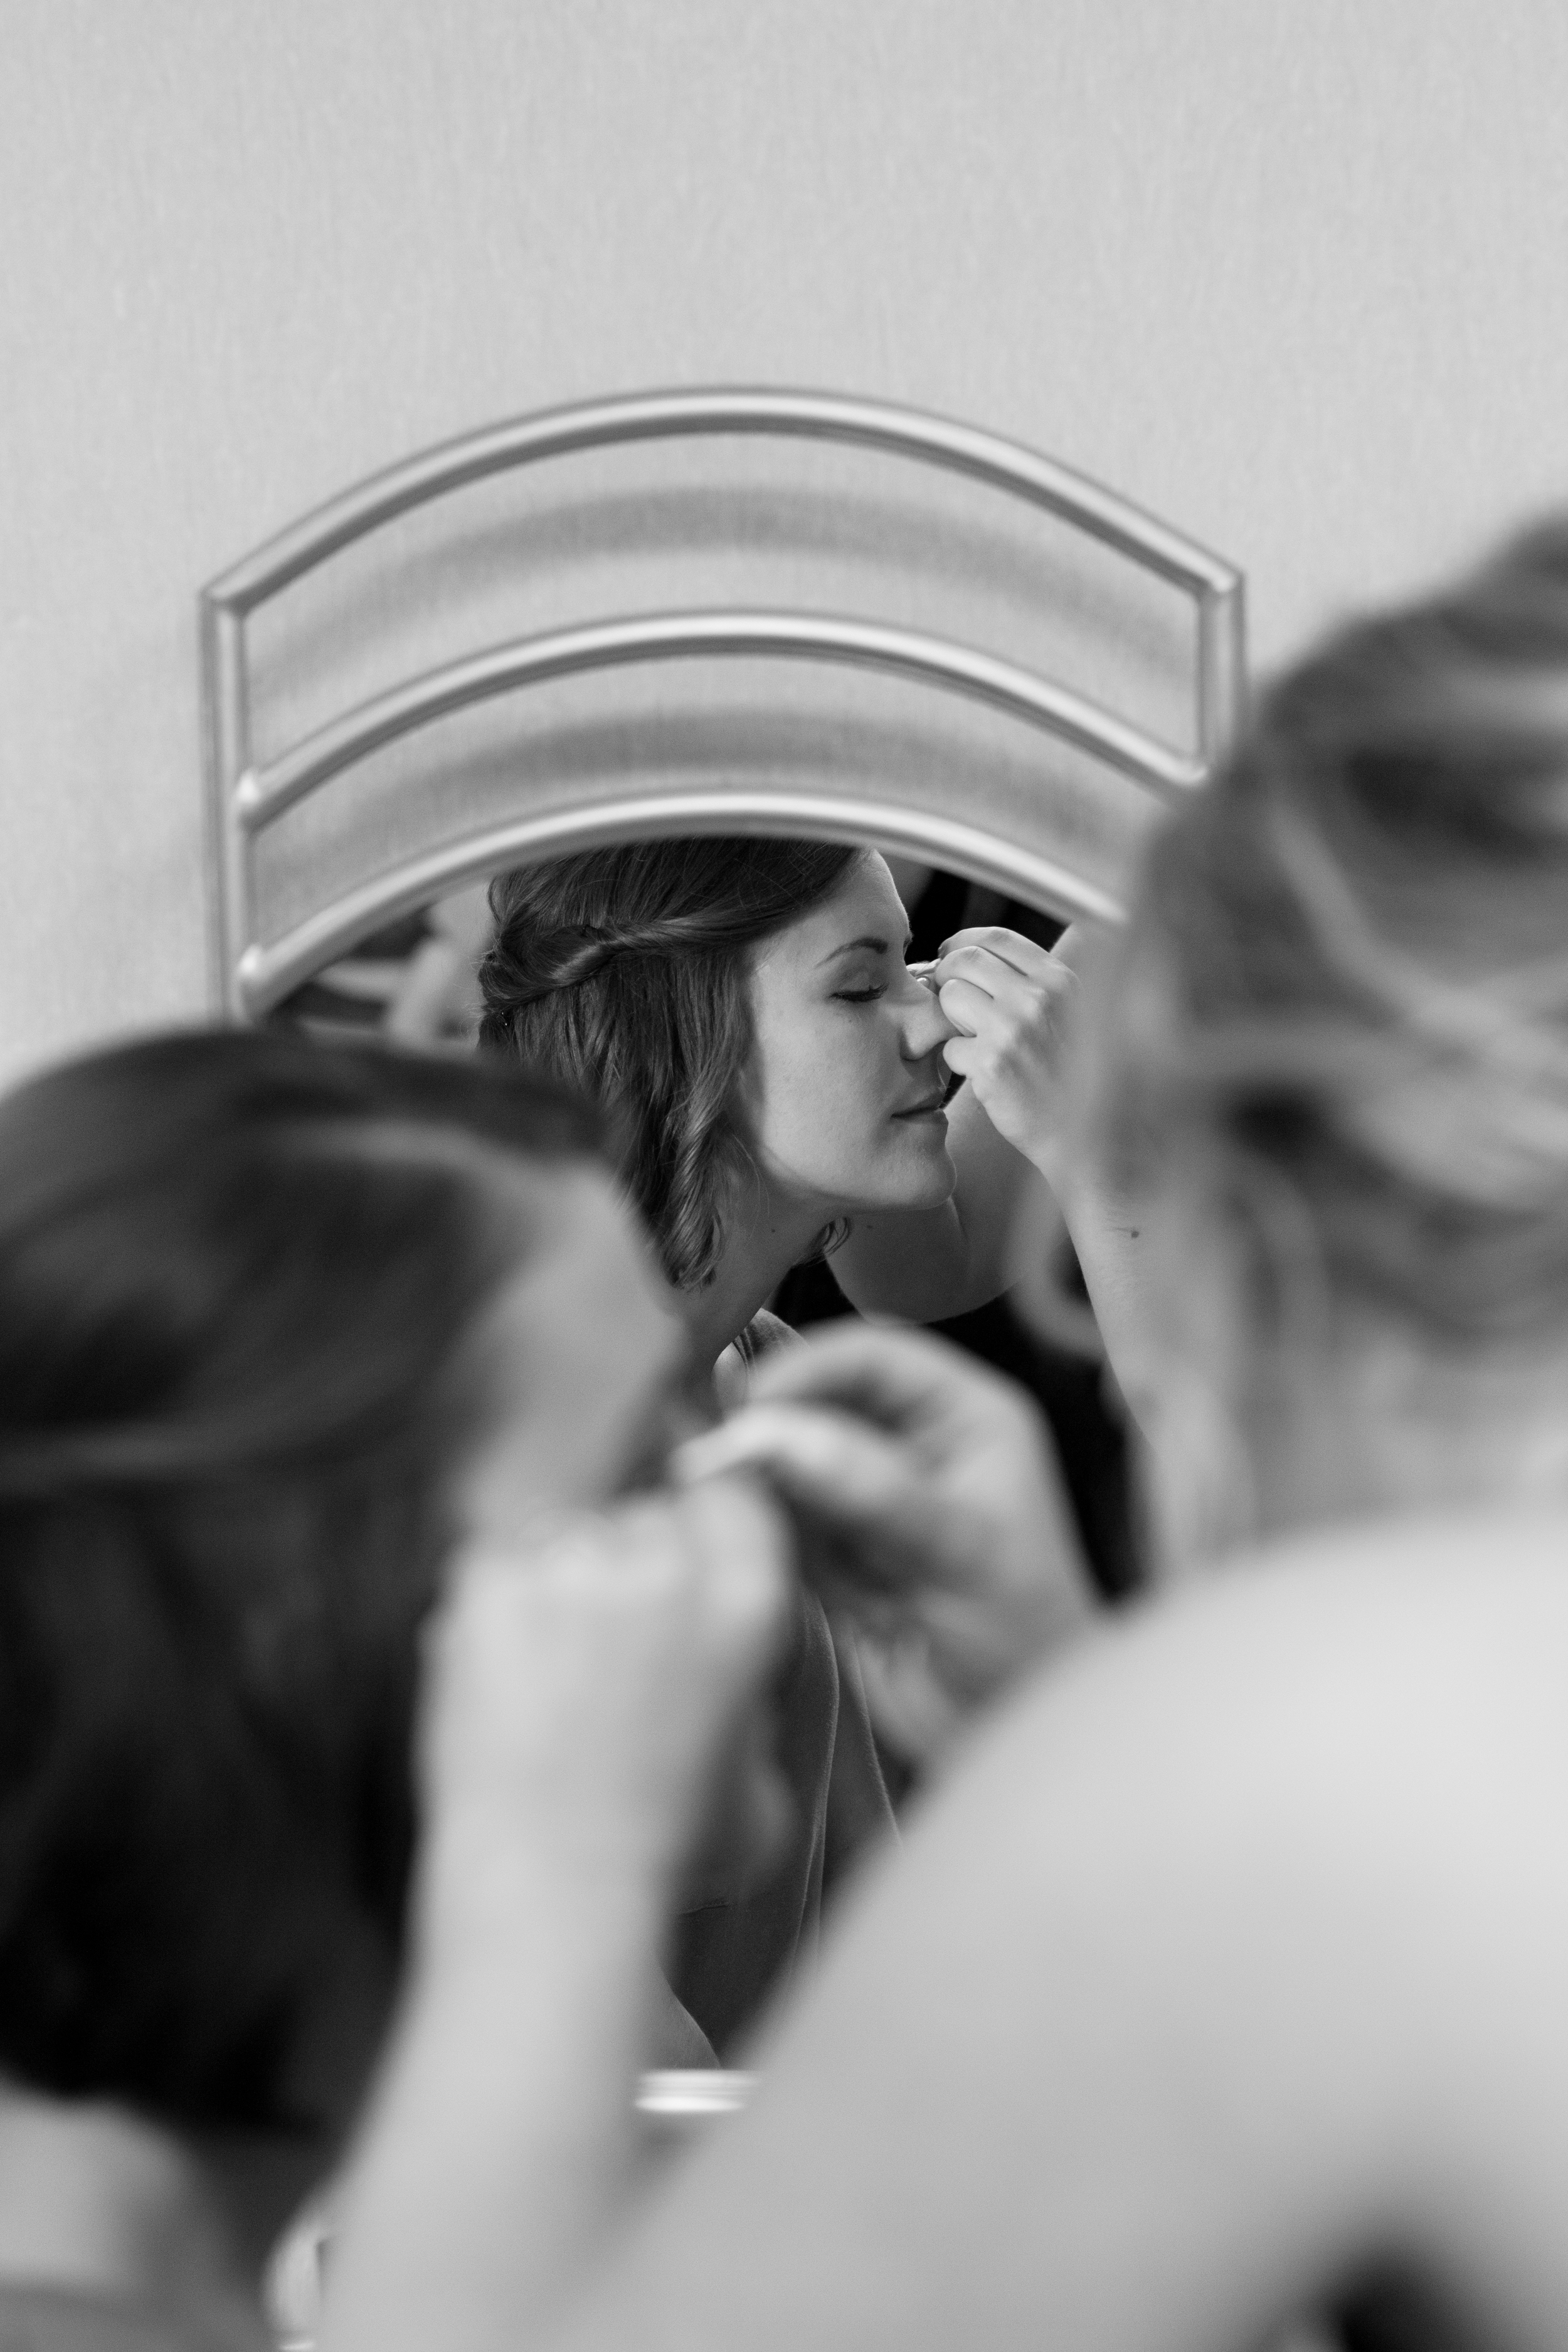 Bride getting ready for wedding day, black and white photo of bride in mirror at wedding at Brackett's Crossing Country Club in Lakeville Minnesota